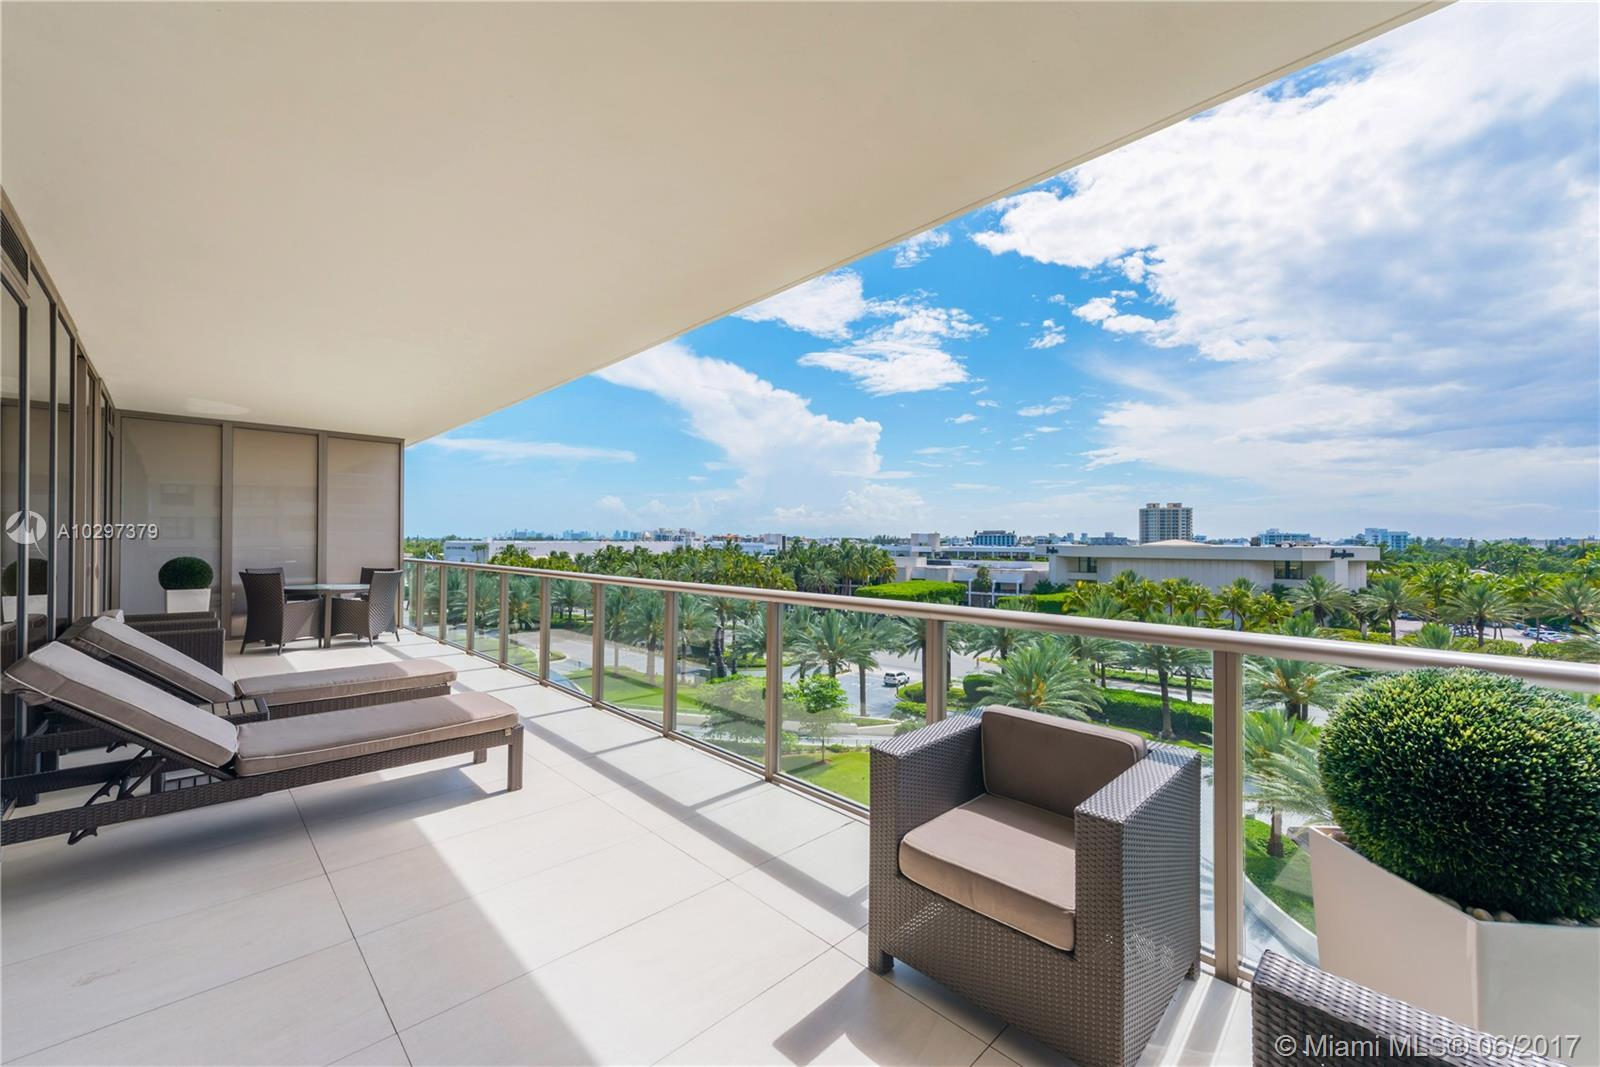 9705 Collins Ave Unit: 501N